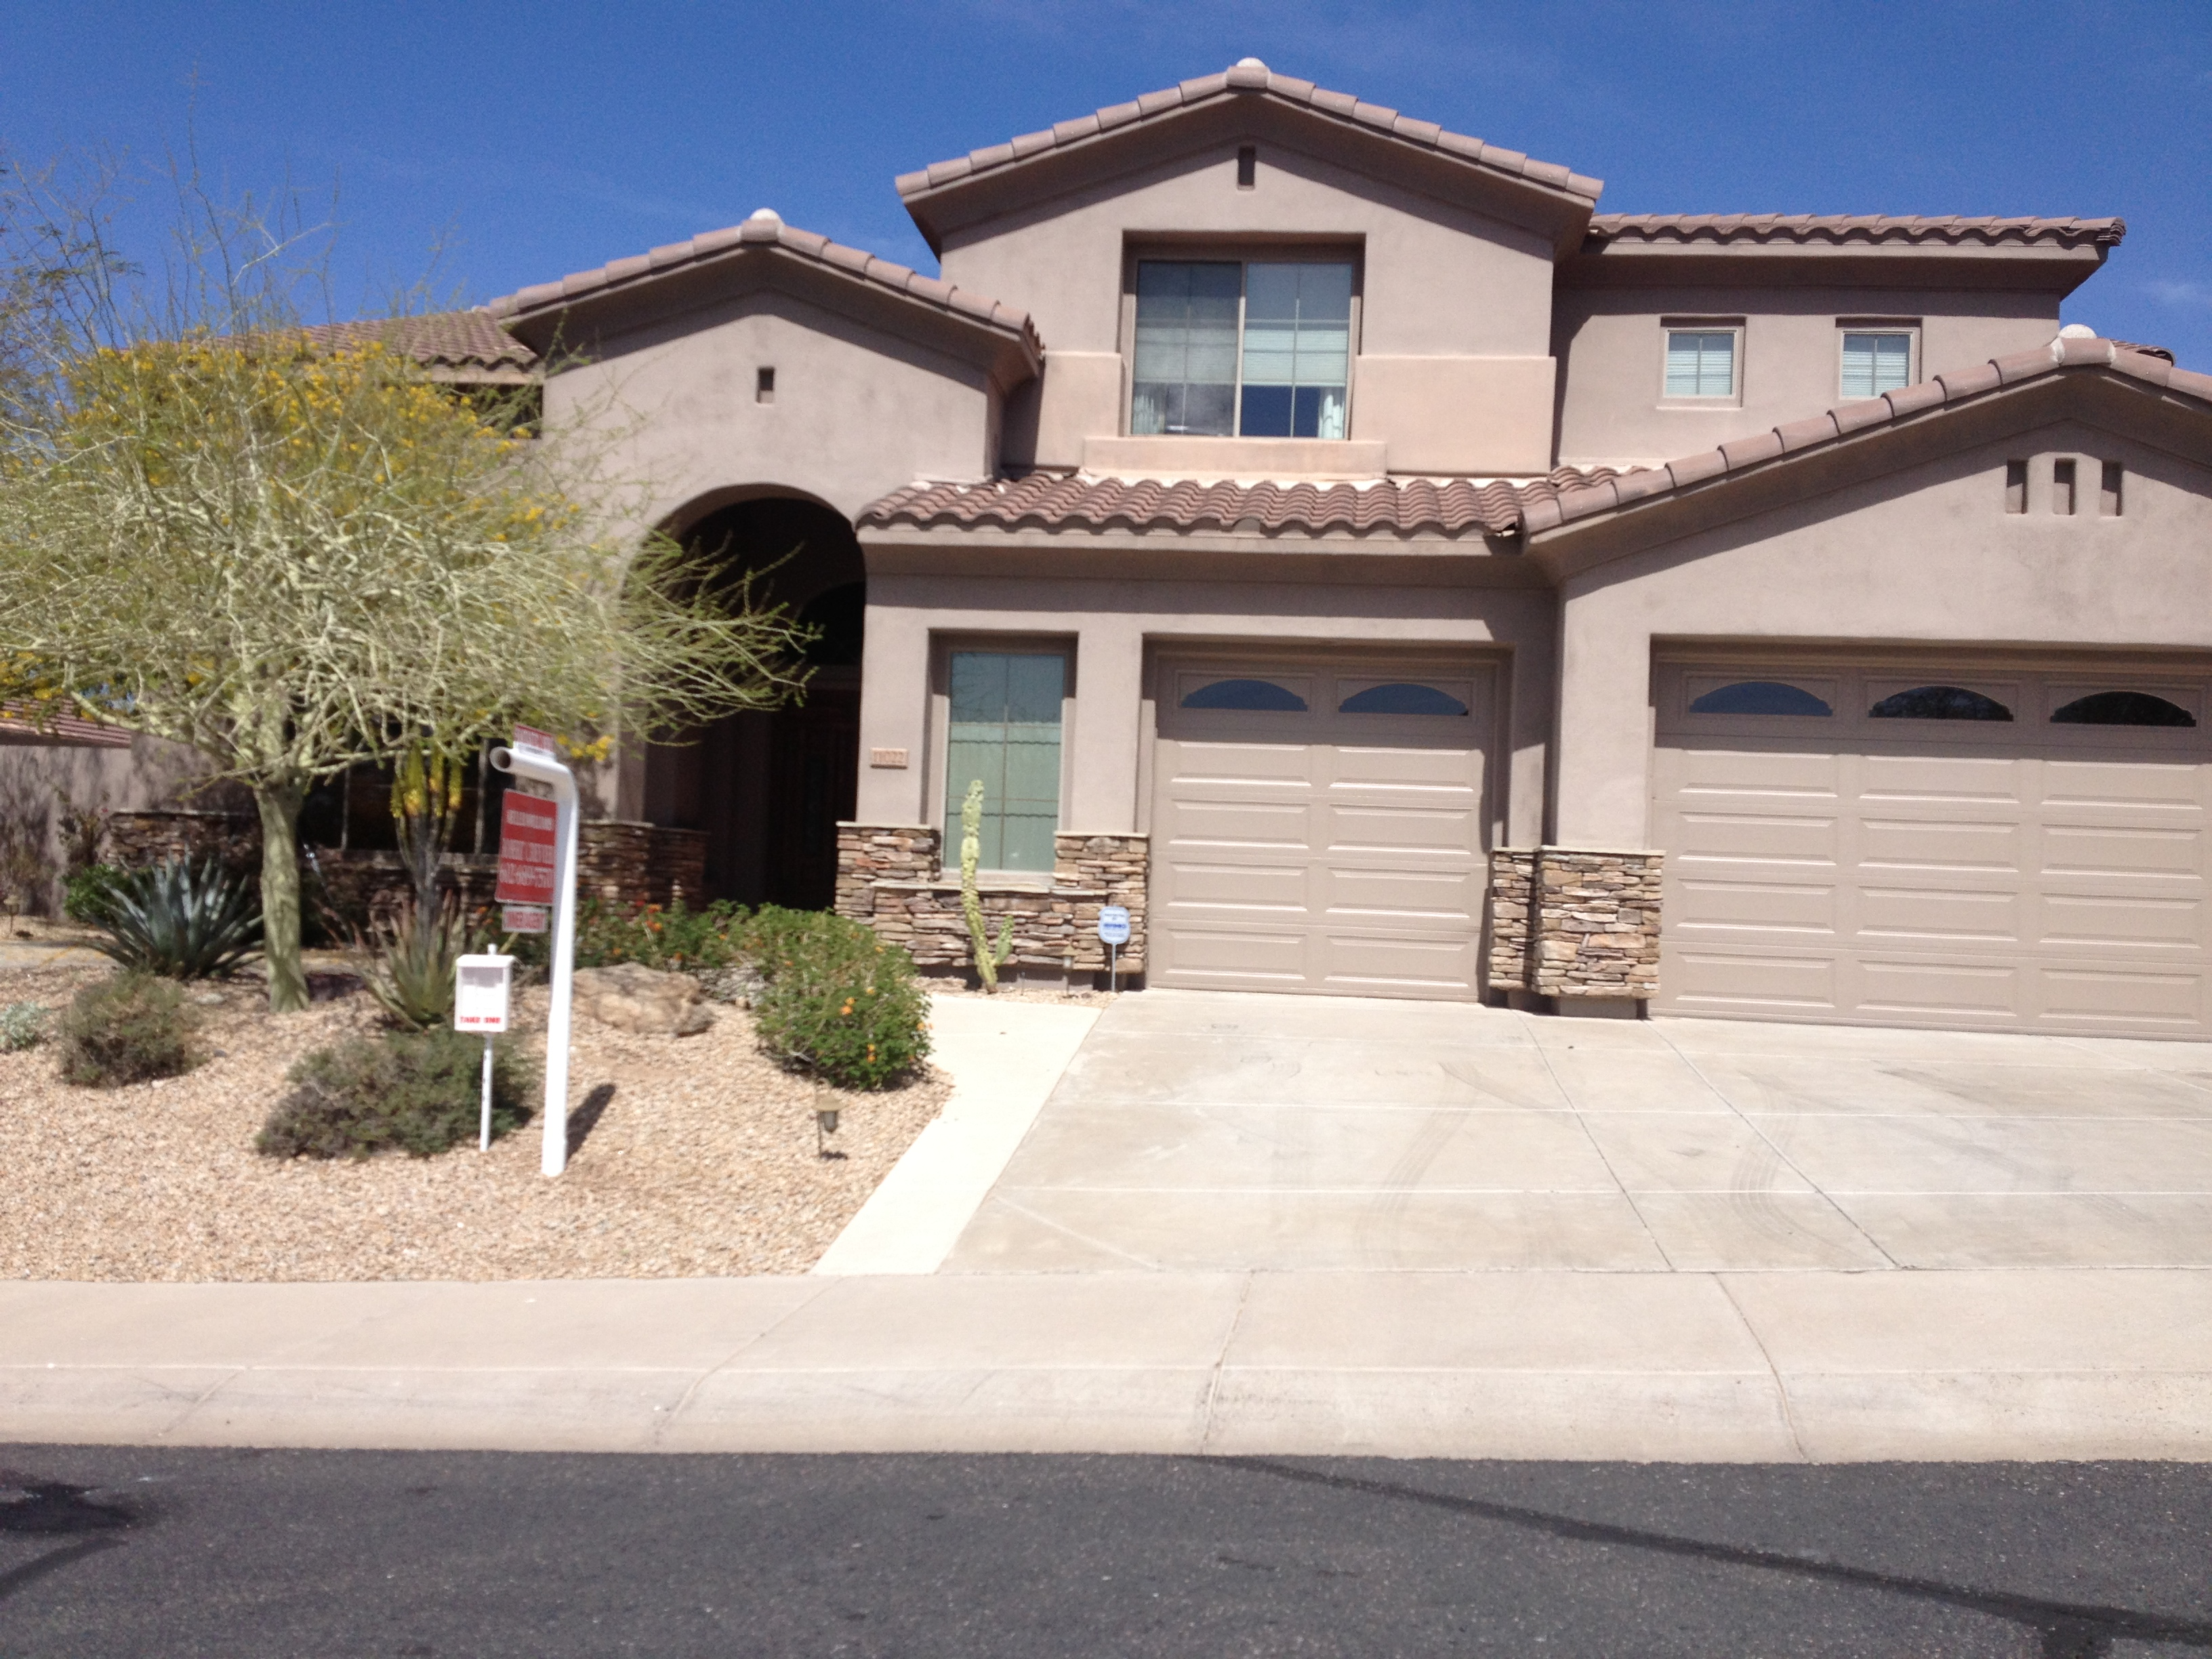 6 Bedroom Home For Sale In Sienna Canyon At Mcdowell